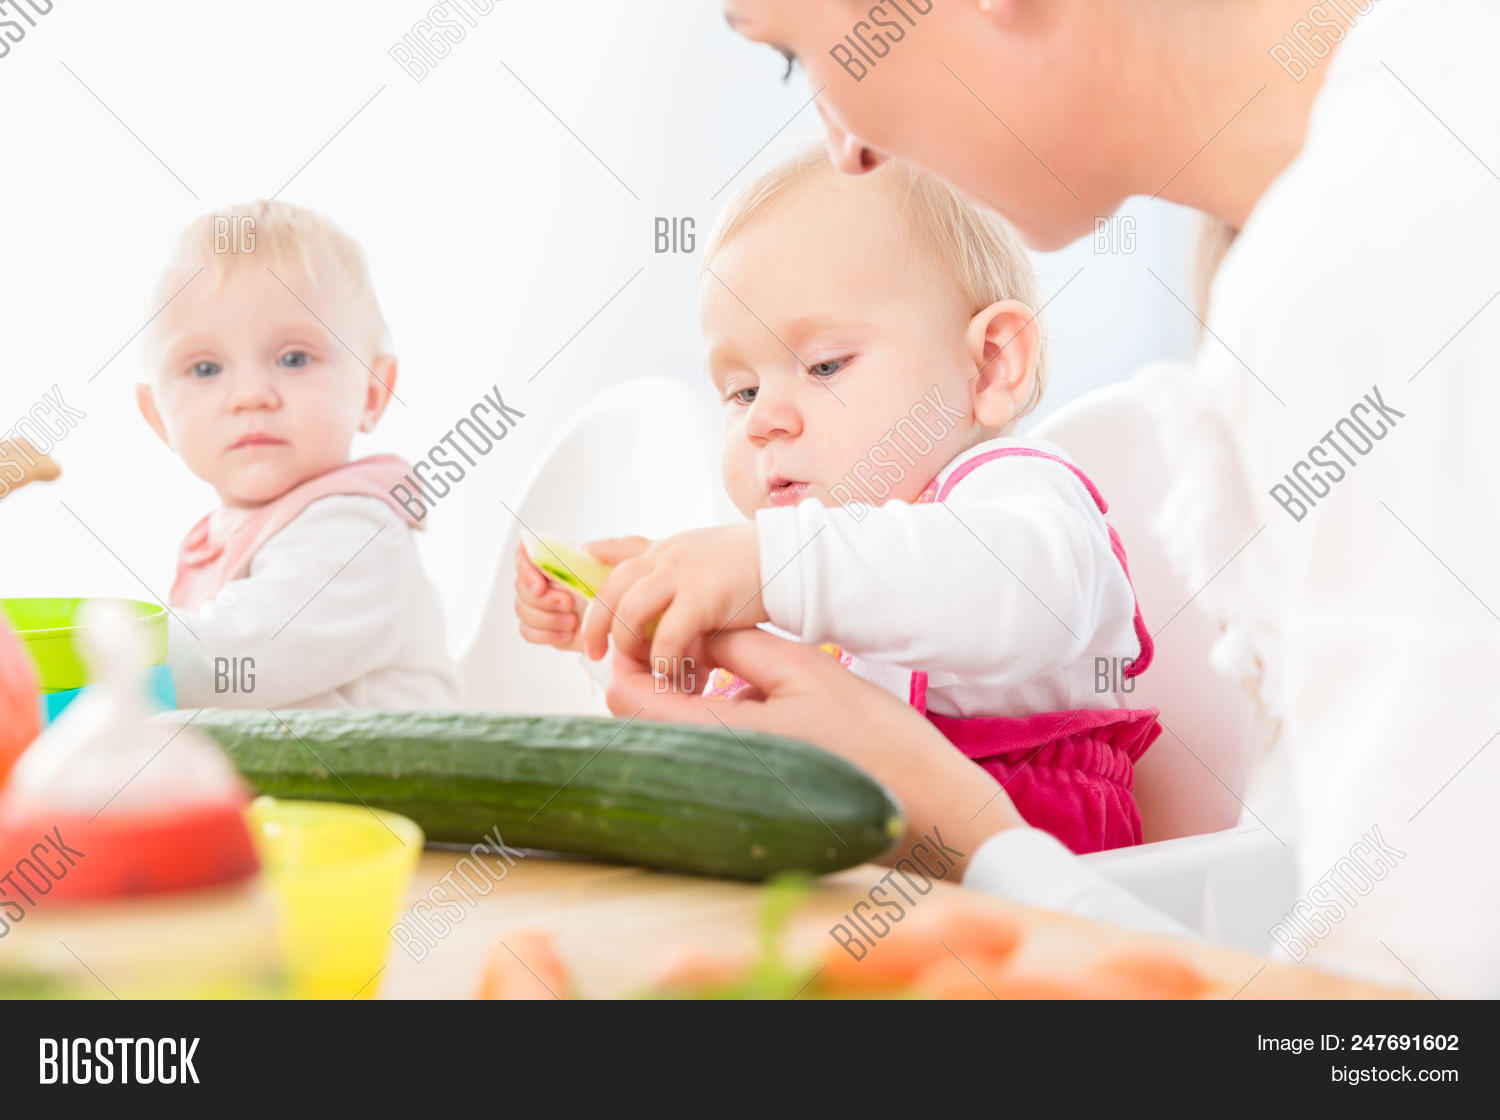 6 month,6 month old,adult,apple,assistant,babies,baby,beginning,blue eyes,bottle,care,caregiver,caucasian,chair,child,contemporary,copy space,cute,daycare,eating,female,food,fruits,girl,girls,healthy,high chair,indoors,infant,modern,mother,natural,nurse,nursery,nutrition,nutritious,organic,parent,pink,portrait,progress,reaching,sitting,six month,solid,supervised,taste,tasty,touching,woman